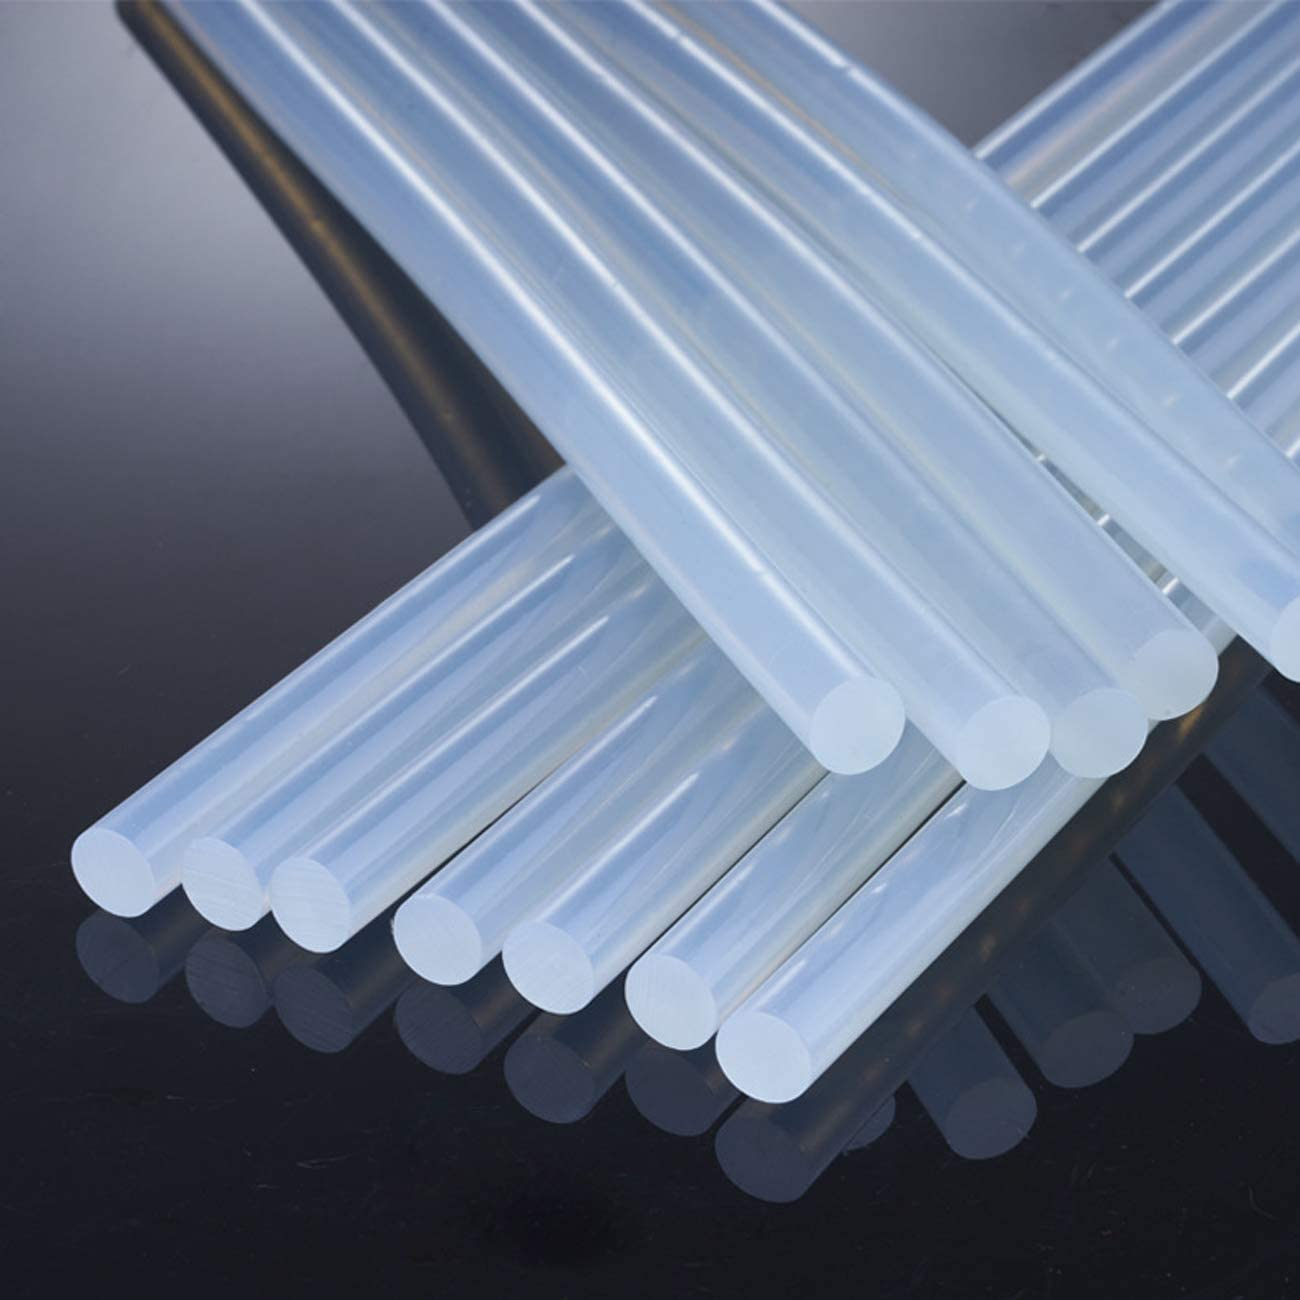 Hot Glue Sticks for Glue Gun,160pcs,0.28'' x 3.94'', Clear Mini Hot Glue Stick,Compatible with Full Size Industrial Glue Guns Adhesive Work for Craftsman DIY Arts and Crafts Home Office Repairing